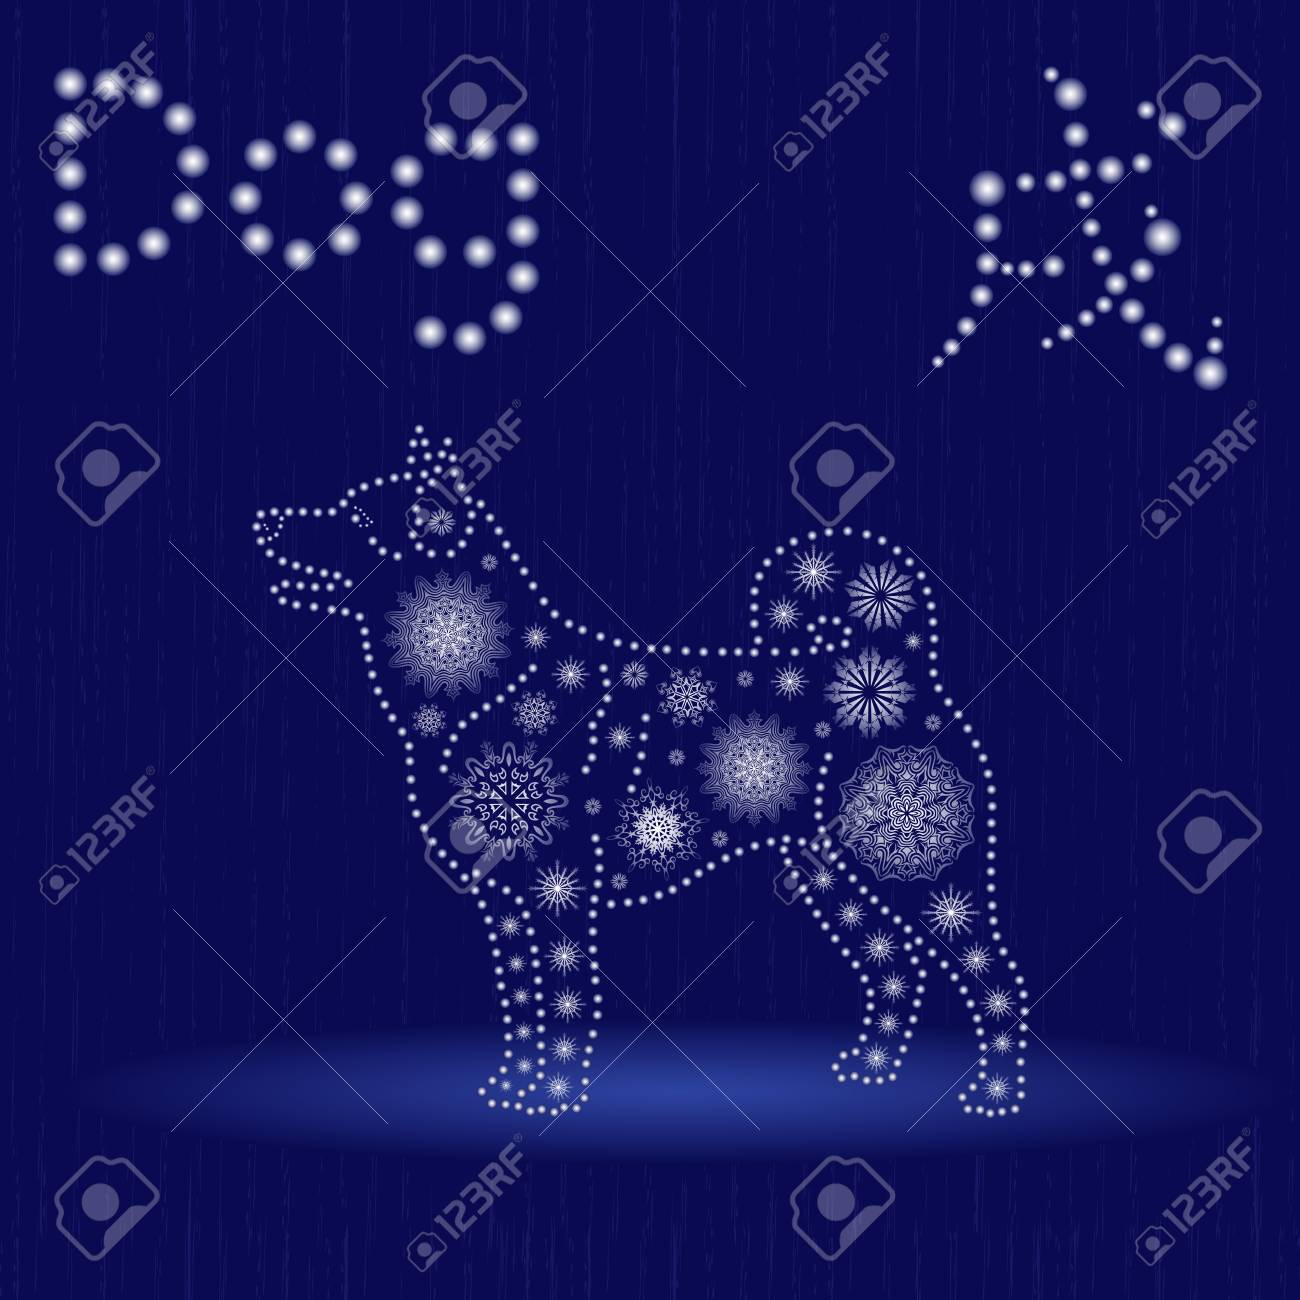 Chinese zodiac sign dog fixed element earth symbol of new year chinese zodiac sign dog fixed element earth symbol of new year on the eastern buycottarizona Images